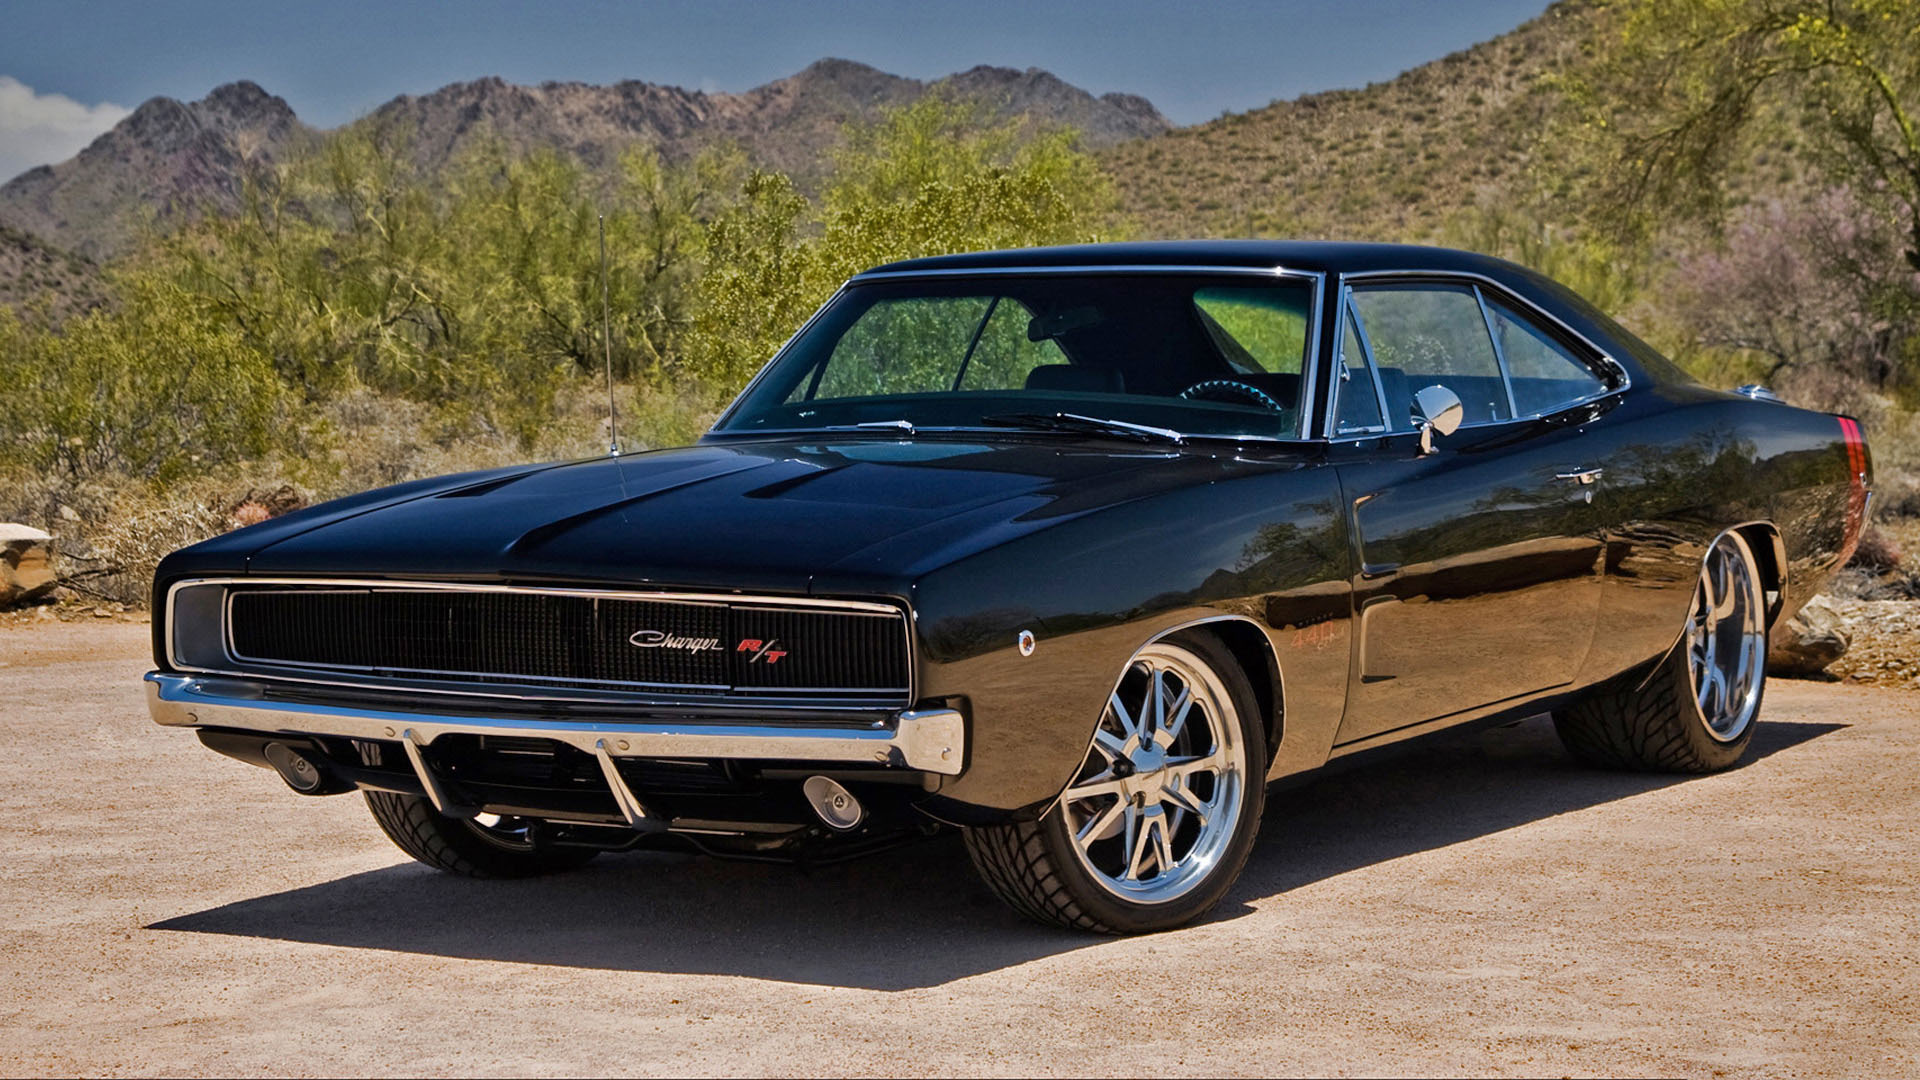 charger-wallhud-com-»-Dodge-Charger-HD-wallhud-wallpaper-wp3603991